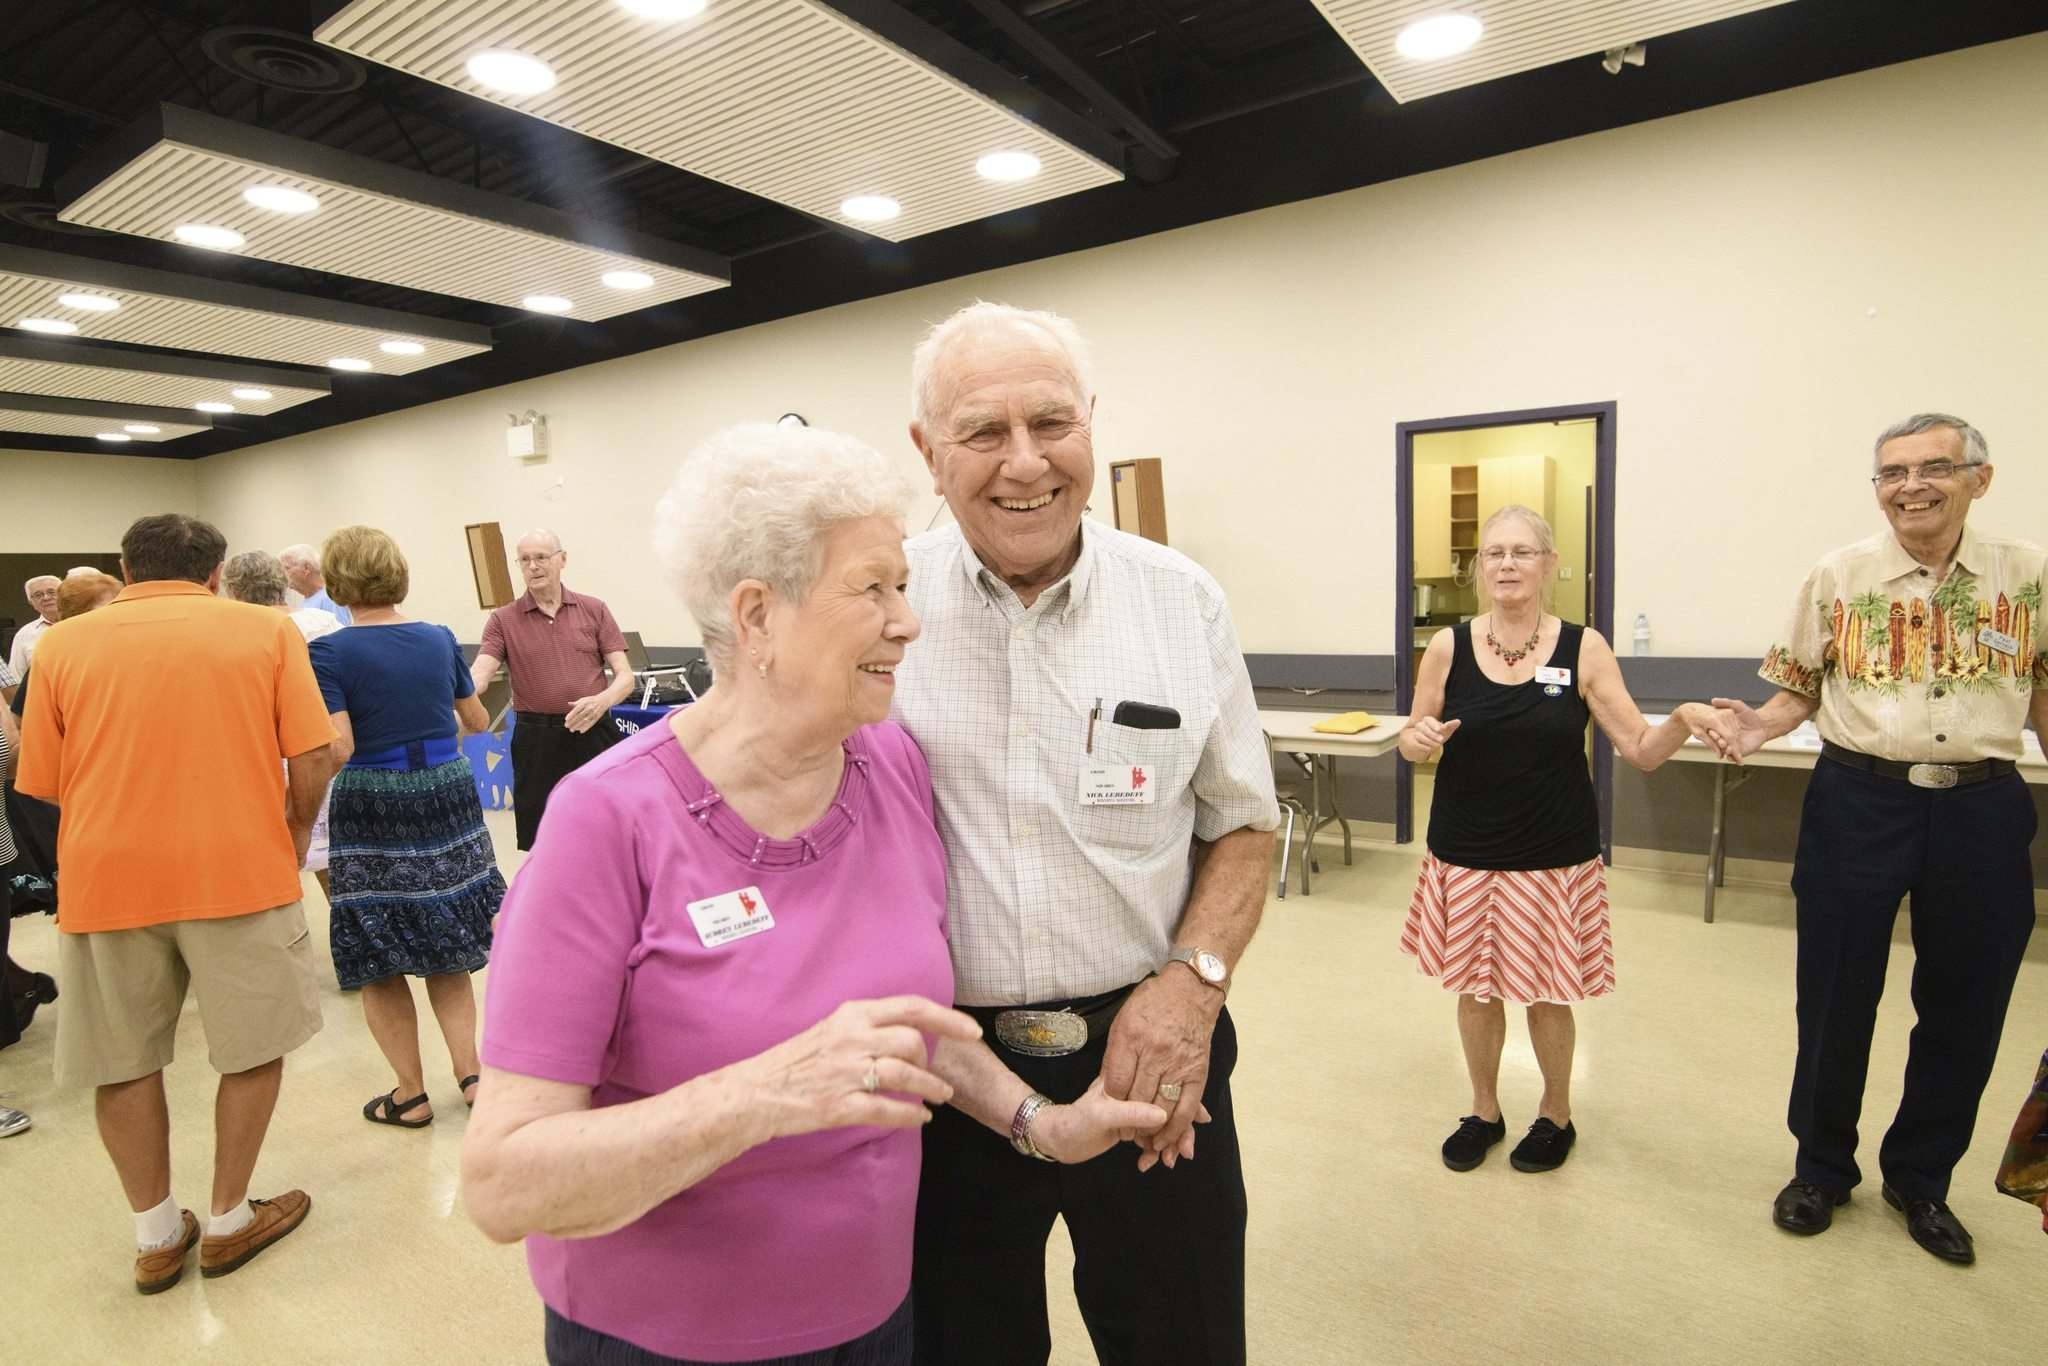 MIKE SUDOMA / WINNIPEG FREE PRESS</p><p>Audrey (left) and Nick (right) have been dancing for 32 years and continue to do so as they dance at Monday nightÕs meetup at Norberry Community Centre September 17, 2019</p>